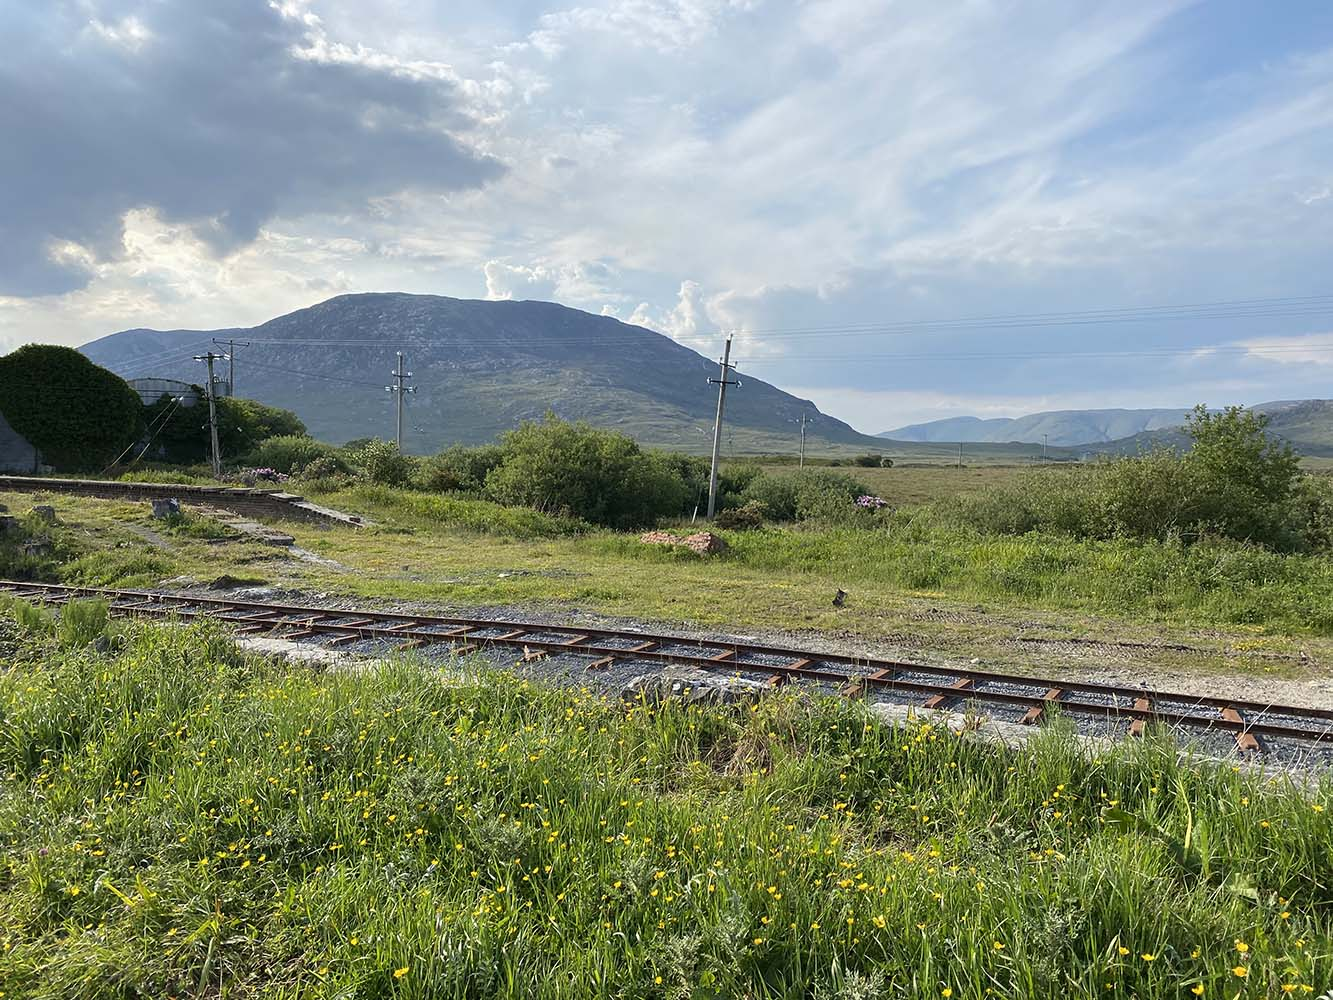 A lovely view of the Maam Turk mountains from the Galway end of the platforms.